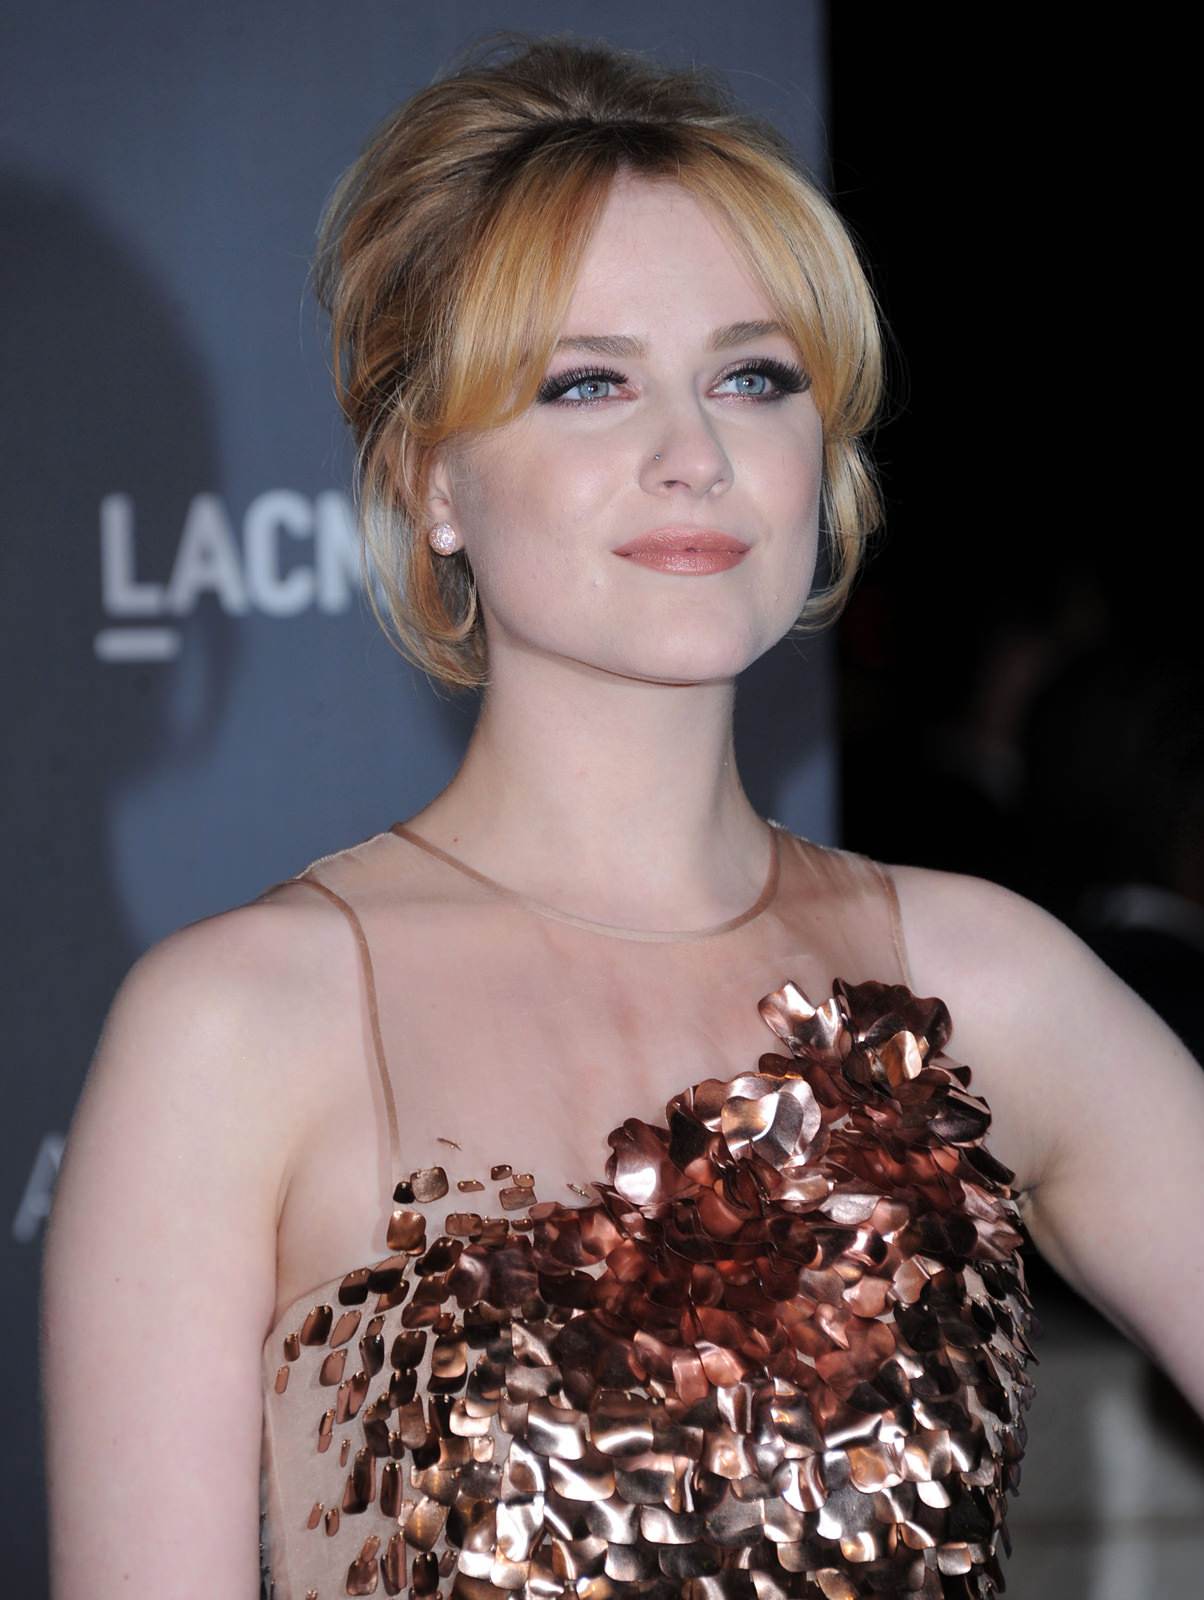 Evan Rachel Wood Photo Gallery